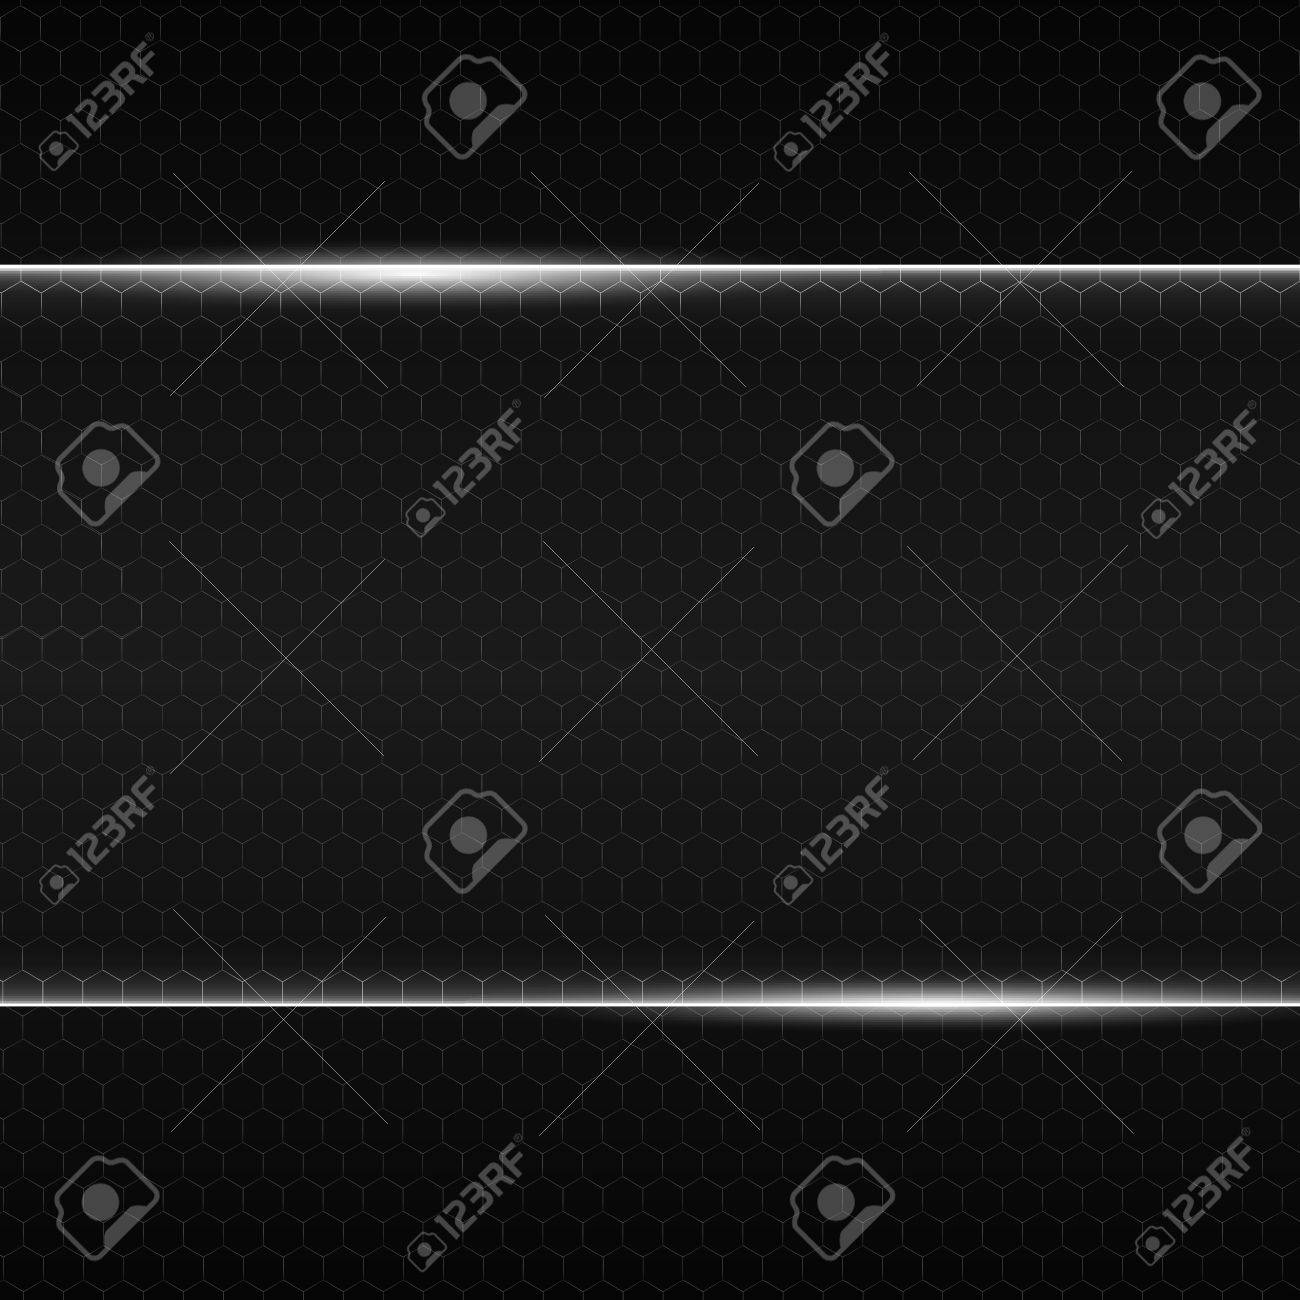 Abstract metal background   illustration Stock Vector - 17068656